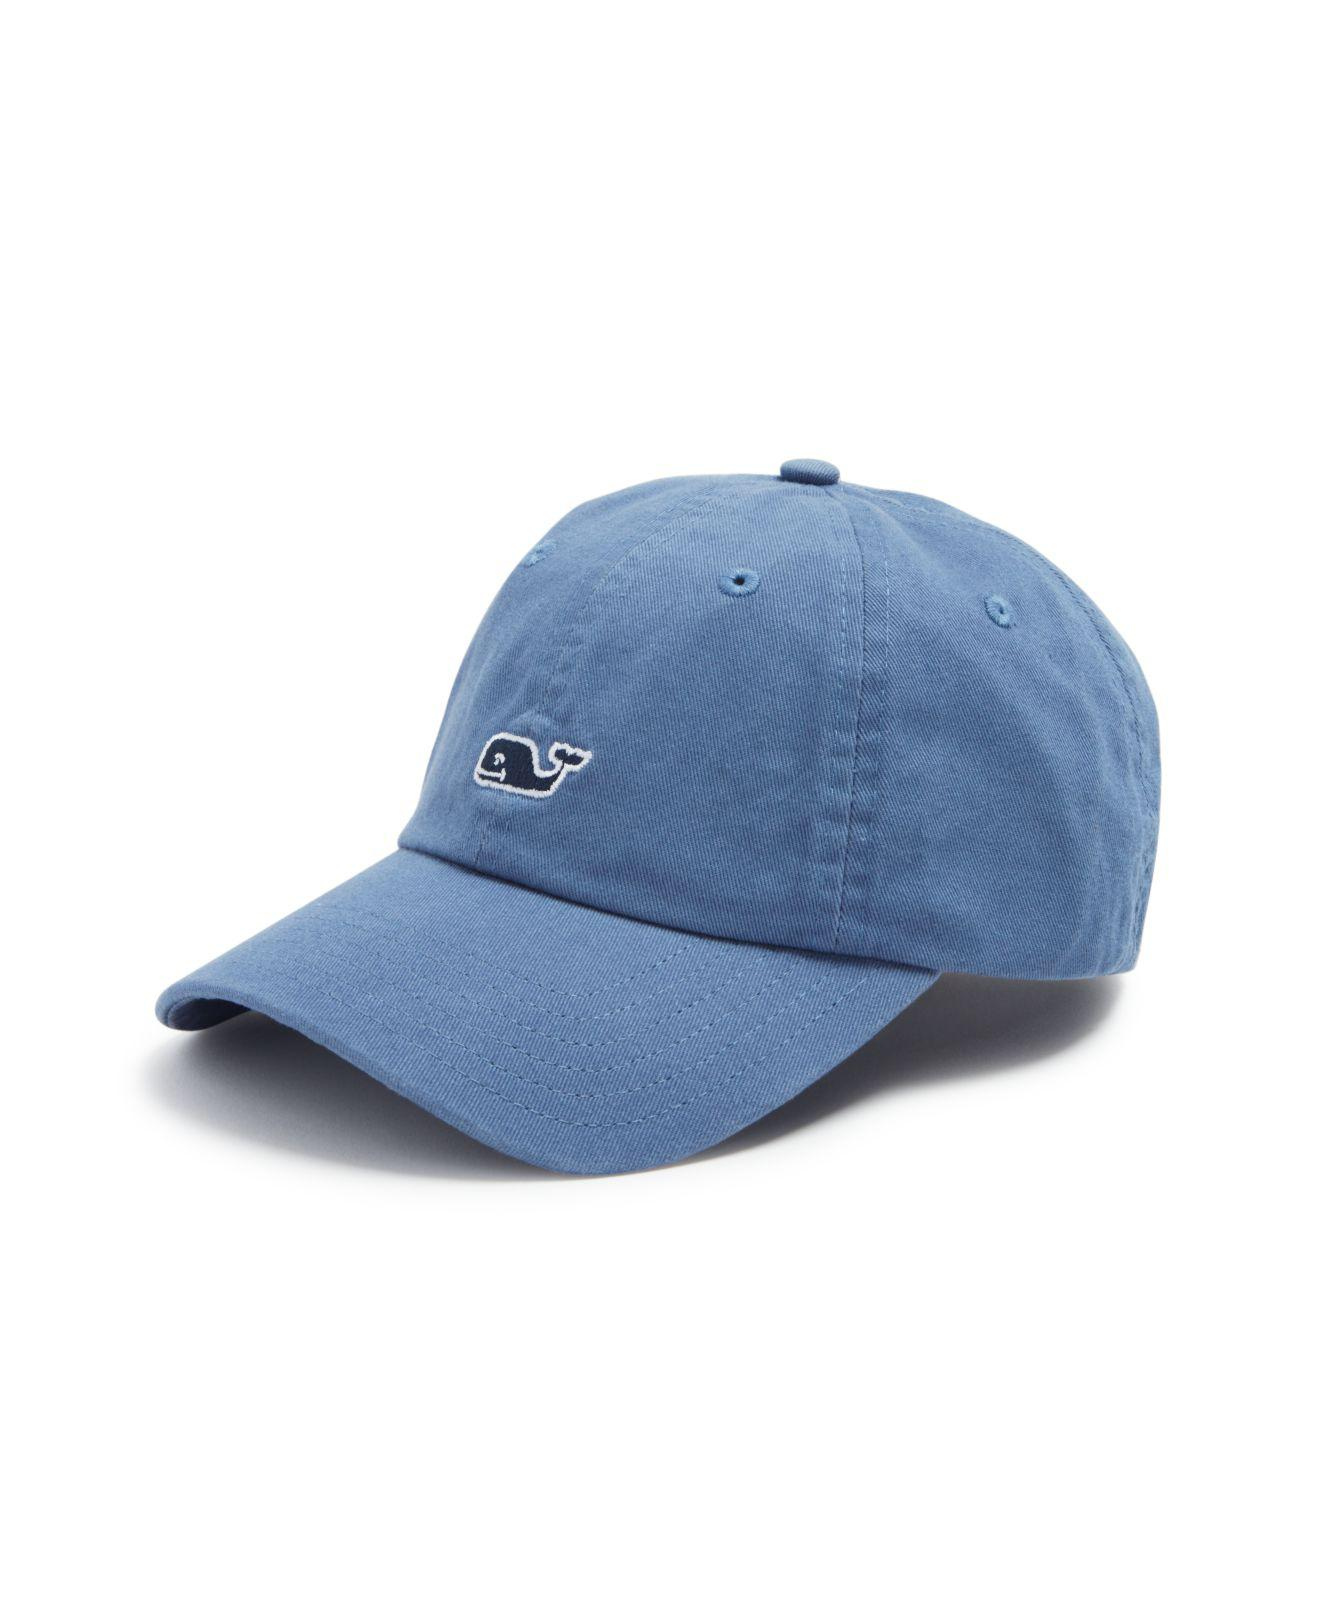 018b3d69 Vineyard Vines Classic Baseball Cap in Blue for Men - Lyst